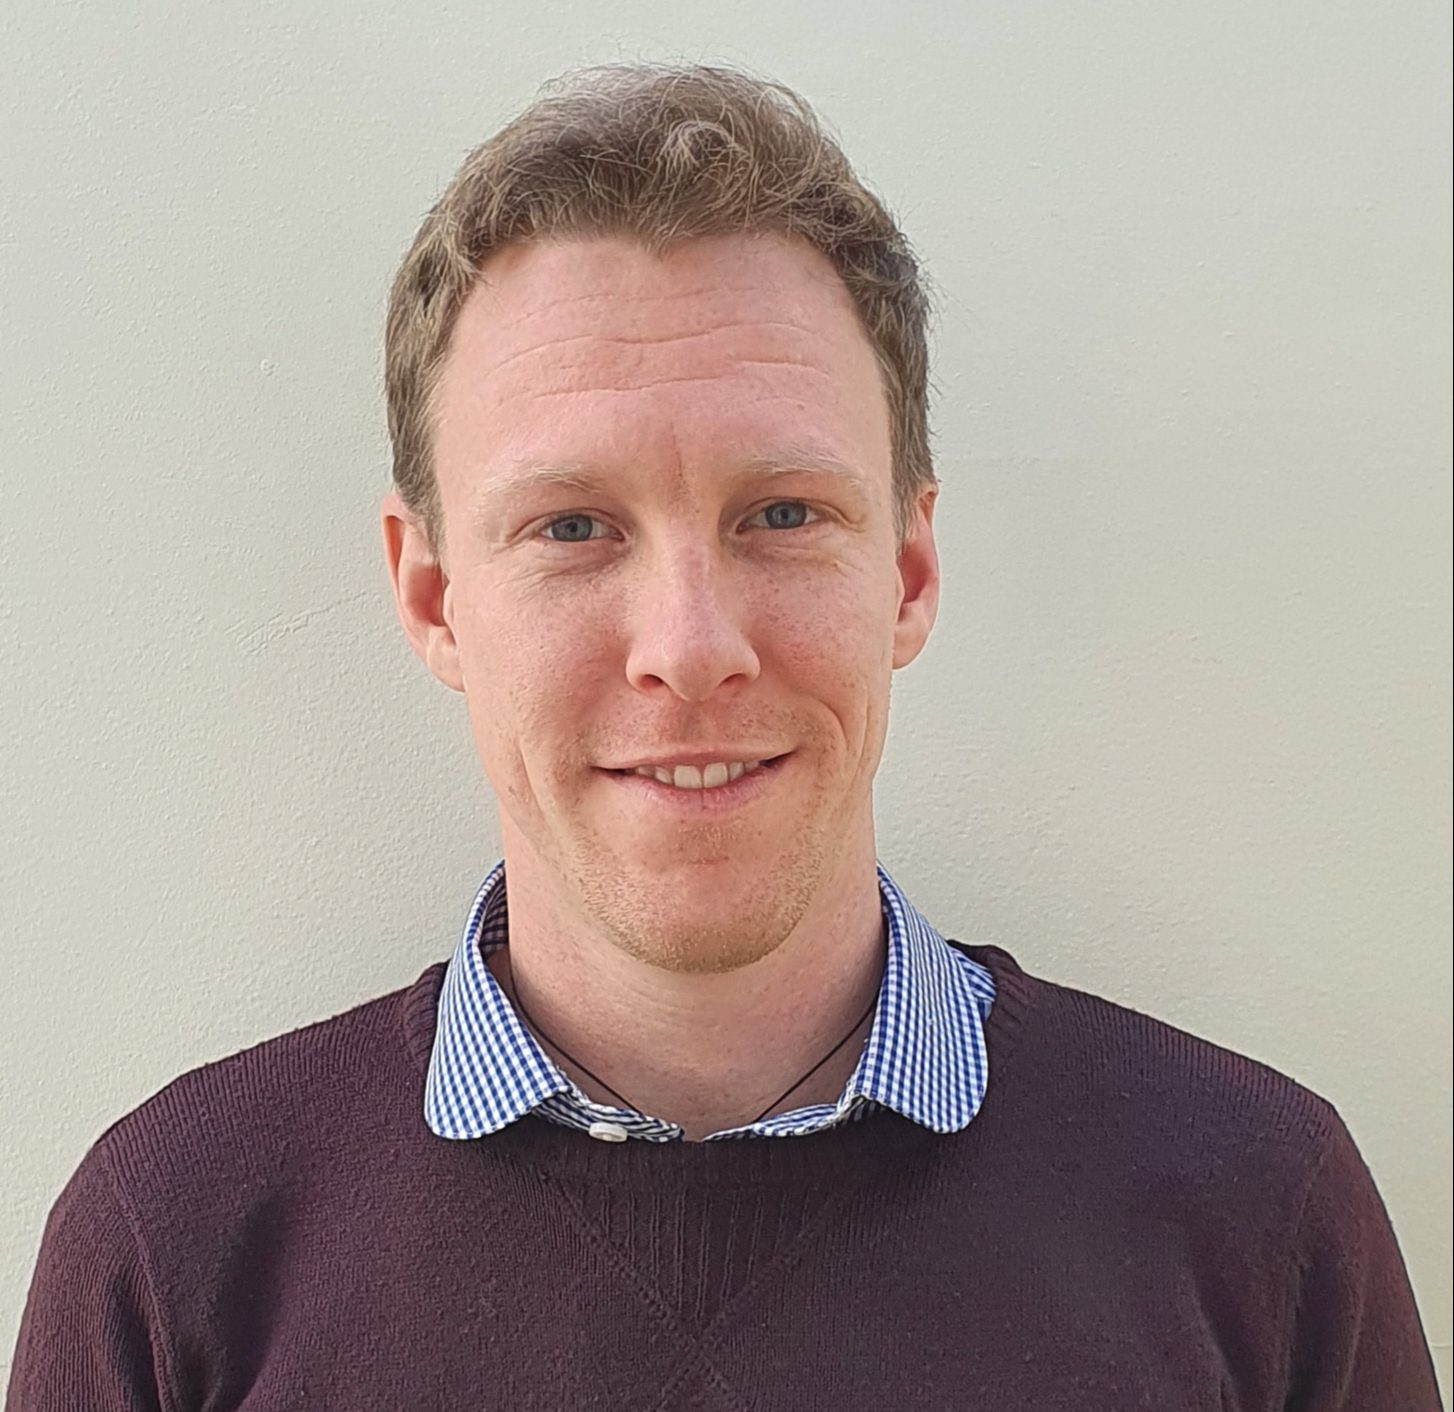 A Day in the Life of an Environmental and Sustainability Graduate - Matt Amy